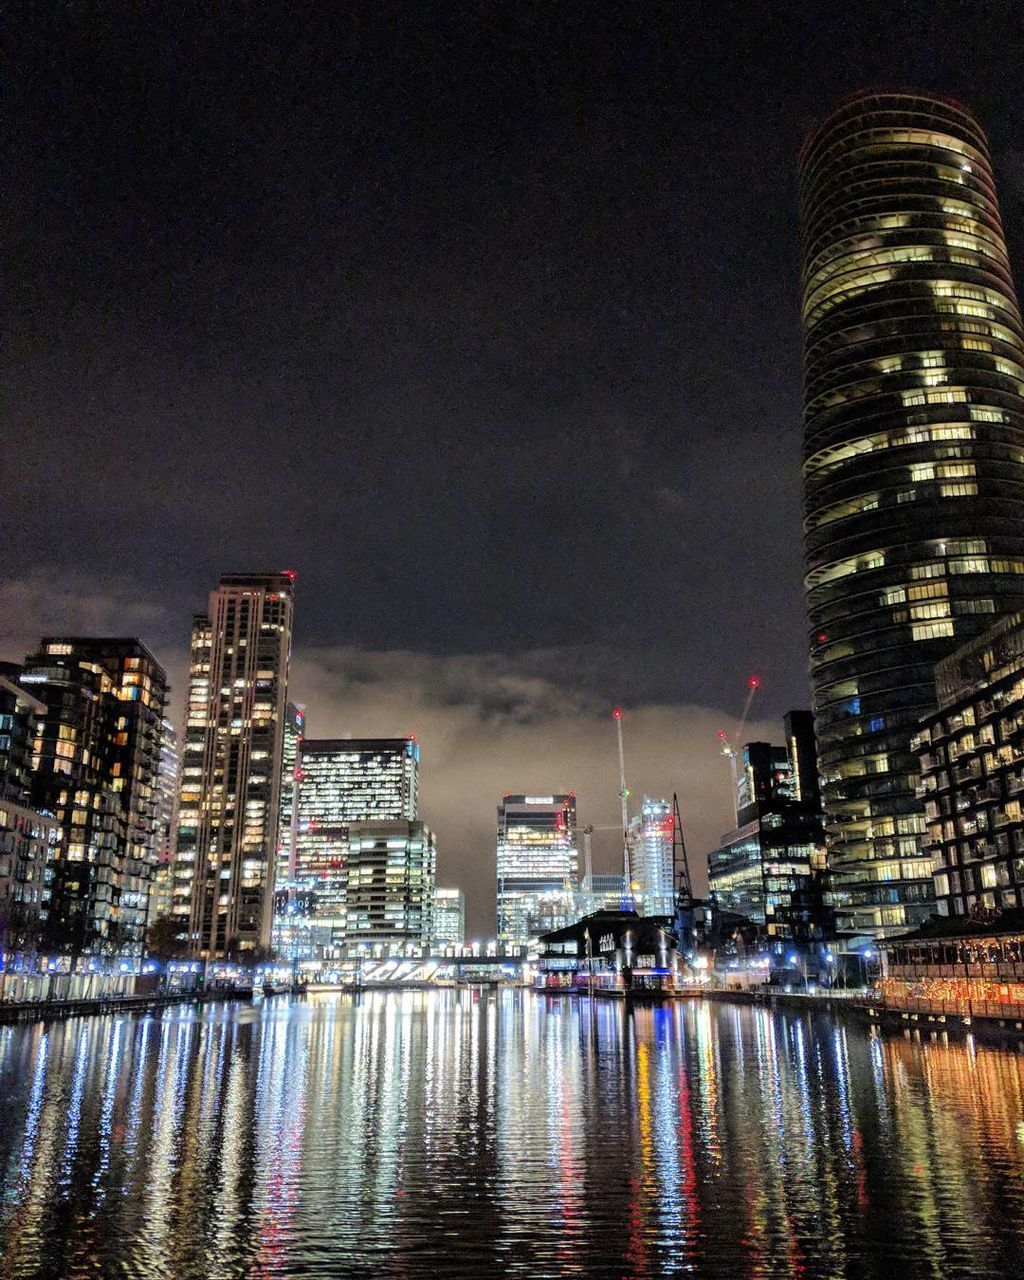 building exterior, architecture, night, built structure, illuminated, skyscraper, city, travel destinations, sky, waterfront, modern, no people, water, tall, cityscape, outdoors, urban skyline